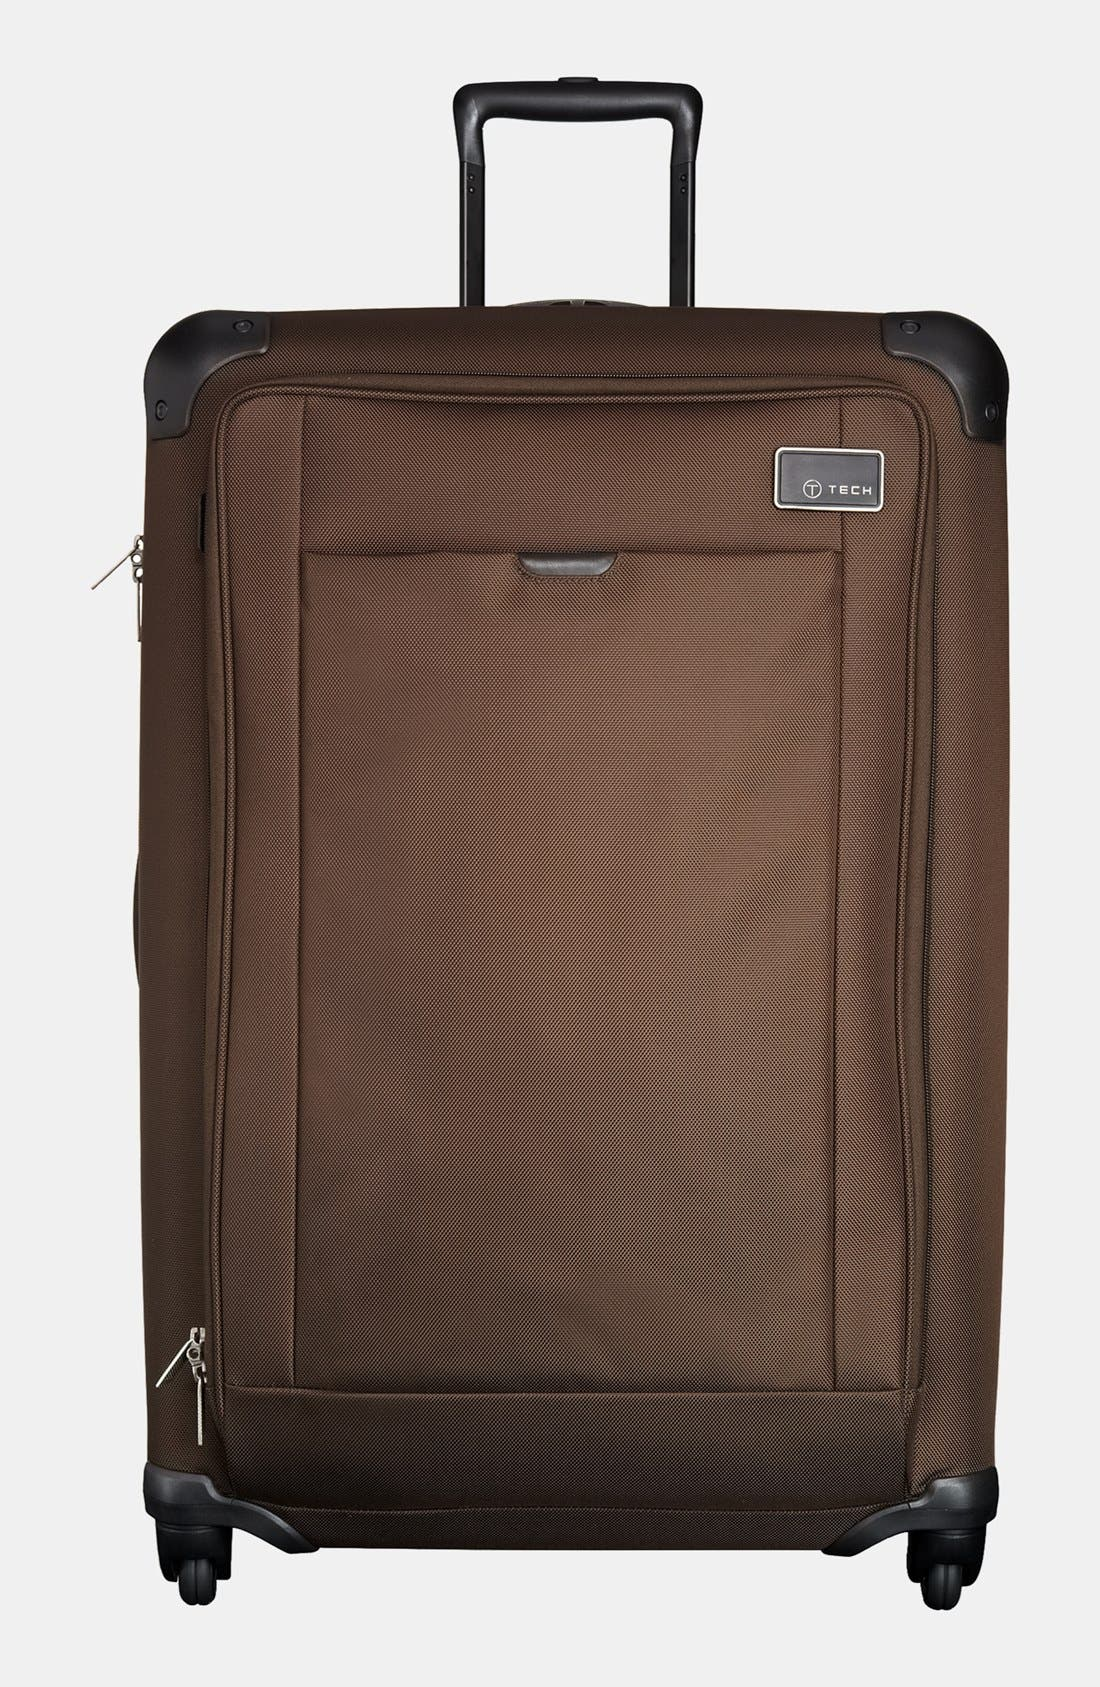 Main Image - Tumi 'T-Tech Network' Lightweight 4-Wheeled Large Trip Packing Case (30 Inch)